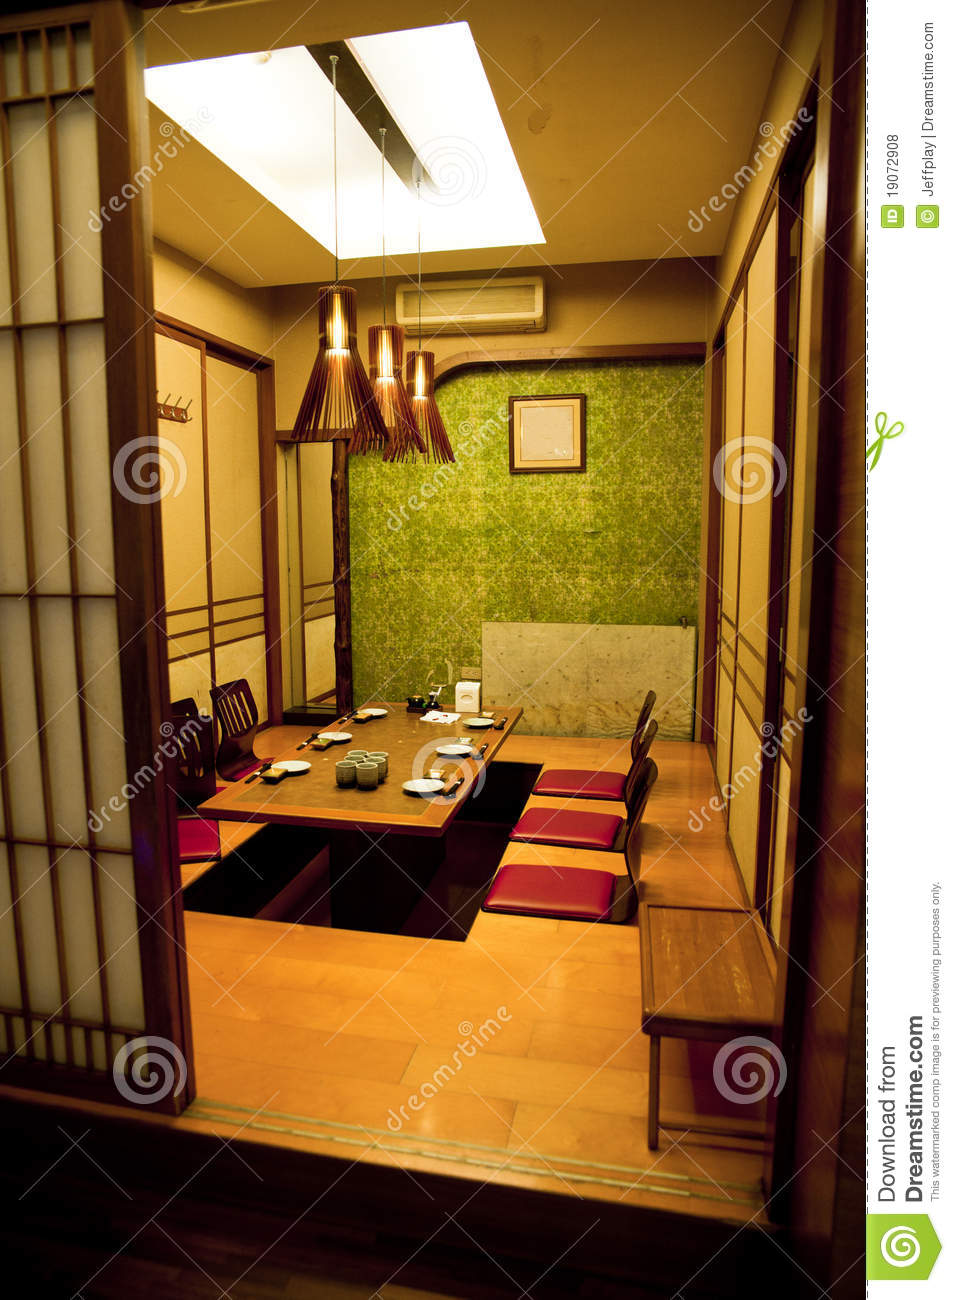 traditional japanese style room royalty free stock photos image